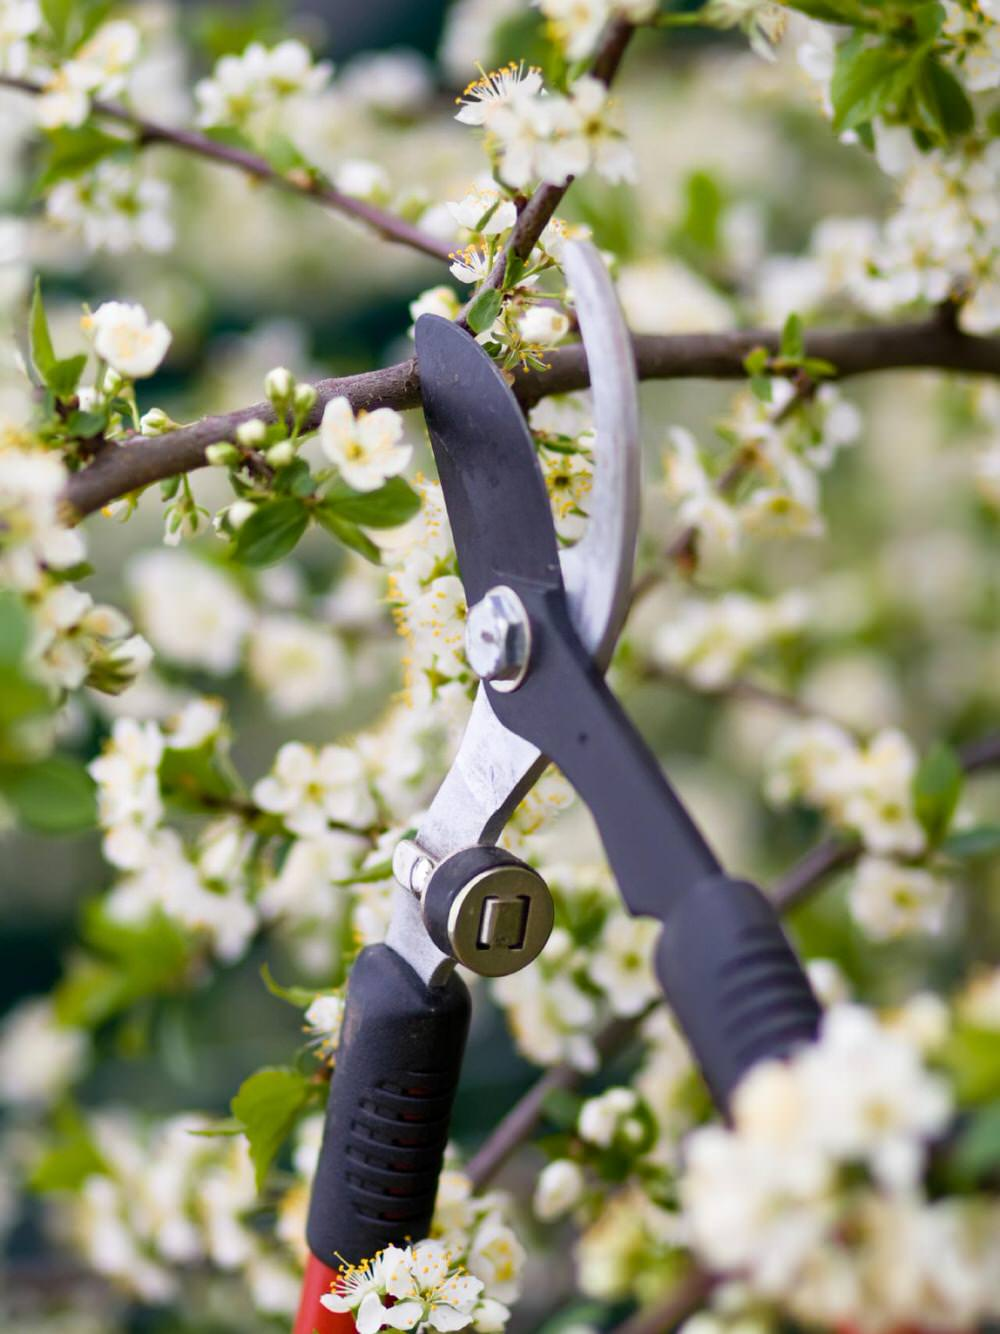 How To Prune Trees • When To Prune Trees